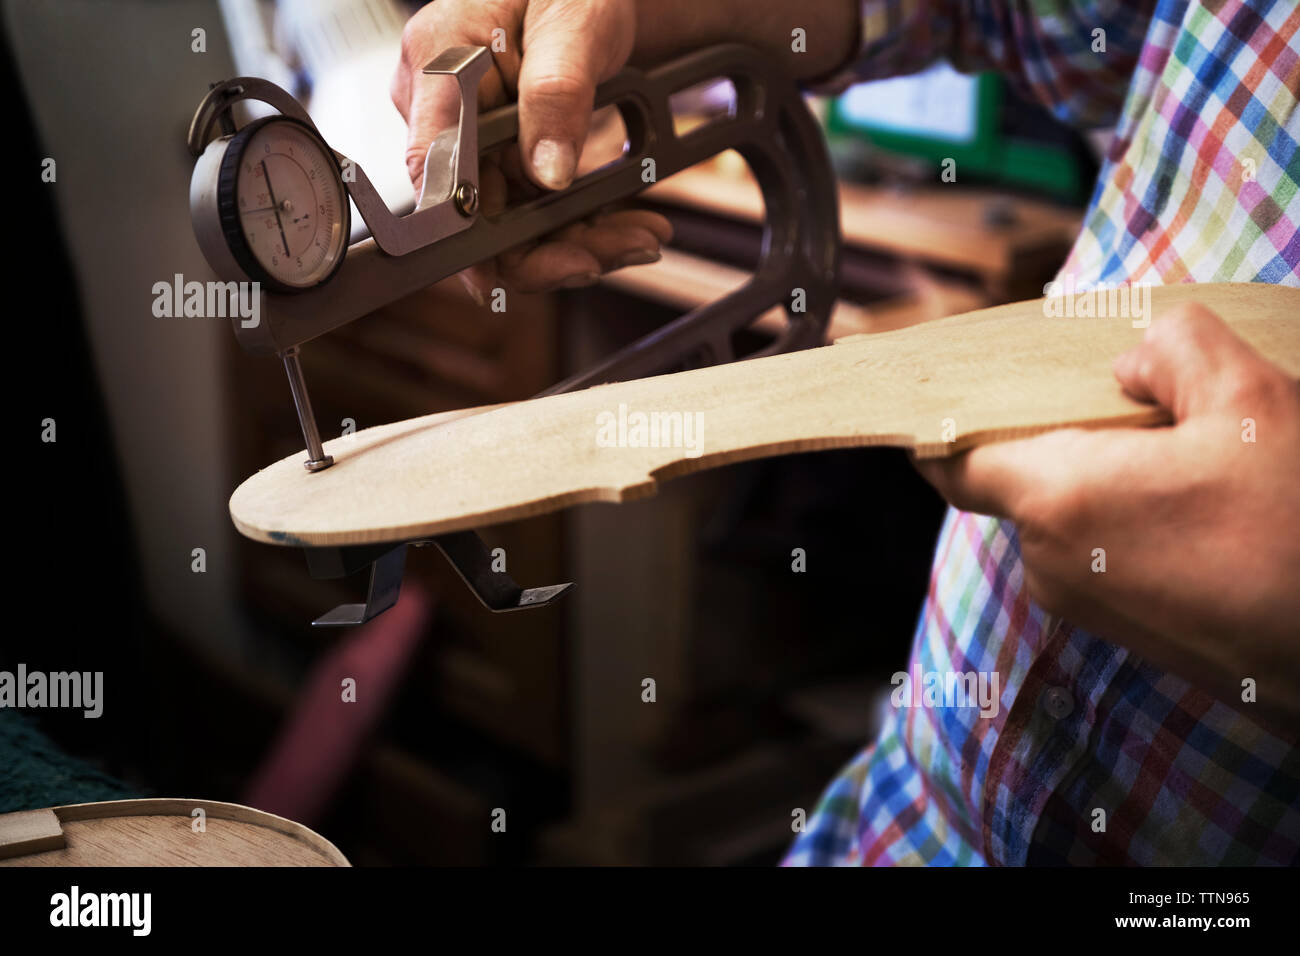 Midsection of craftsman using hand tool to measure wood at workshop - Stock Image